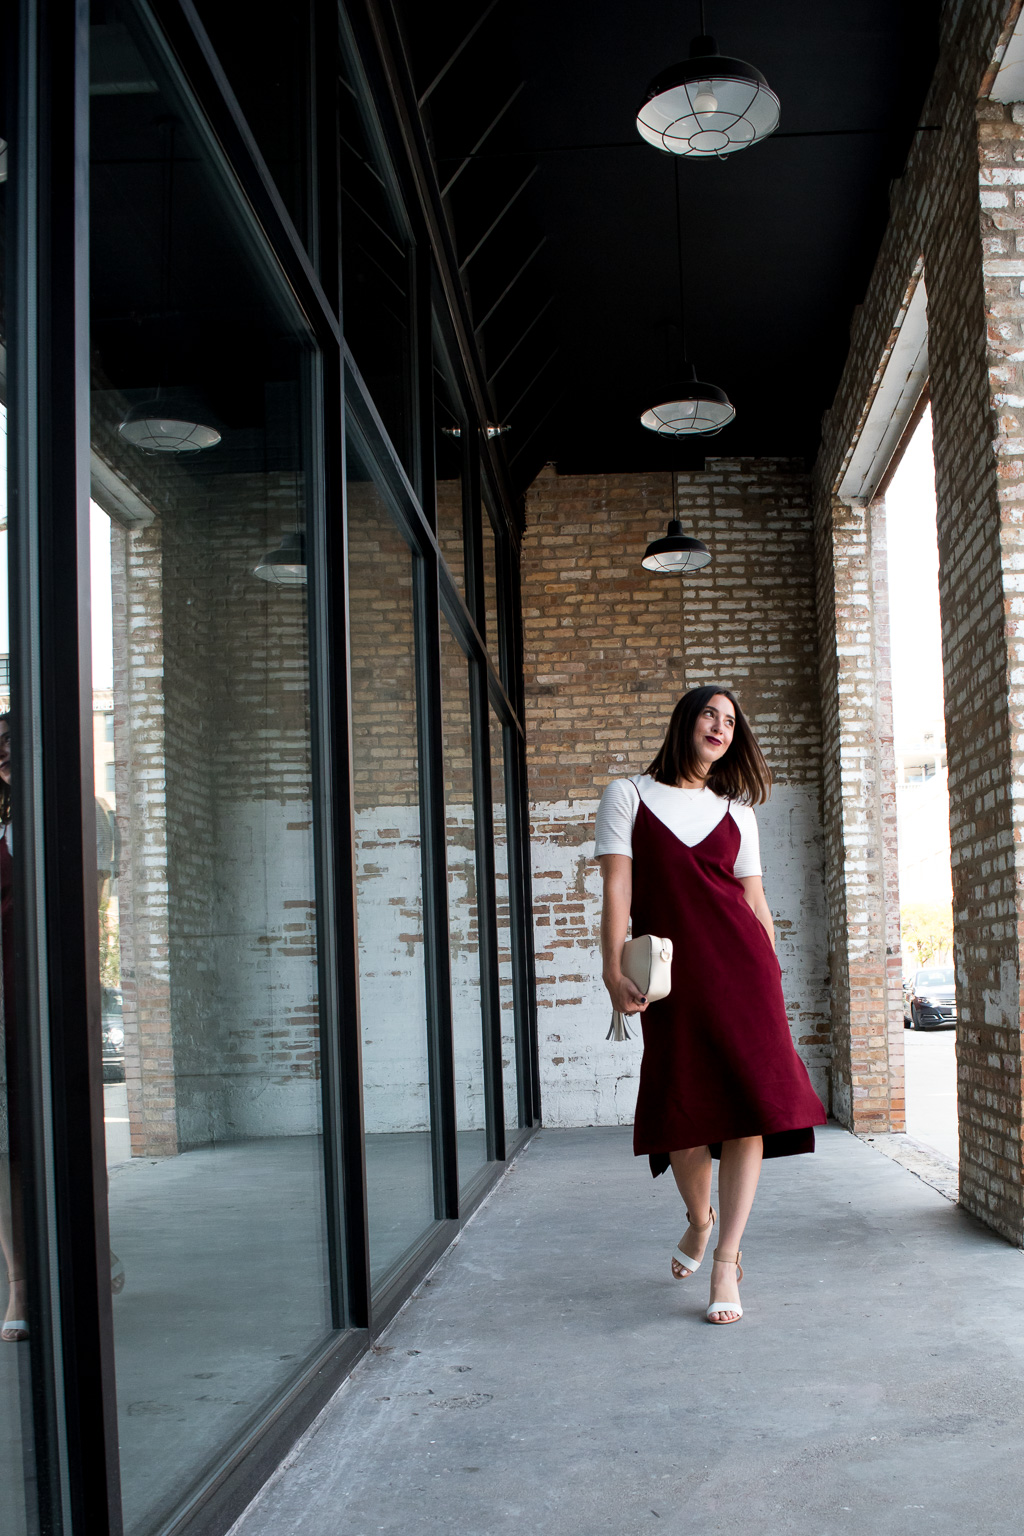 Creative Layering Fashion for Fall   Martel Burgundy Velvet Slip Dress, H&M White Ribbed Dress, KC Jagger Nude Cross Body Bag, Lori's Shoes Armitage Avenue Furry Key Chain, and Zara Nude & White Block Chunky Heeled Sandals